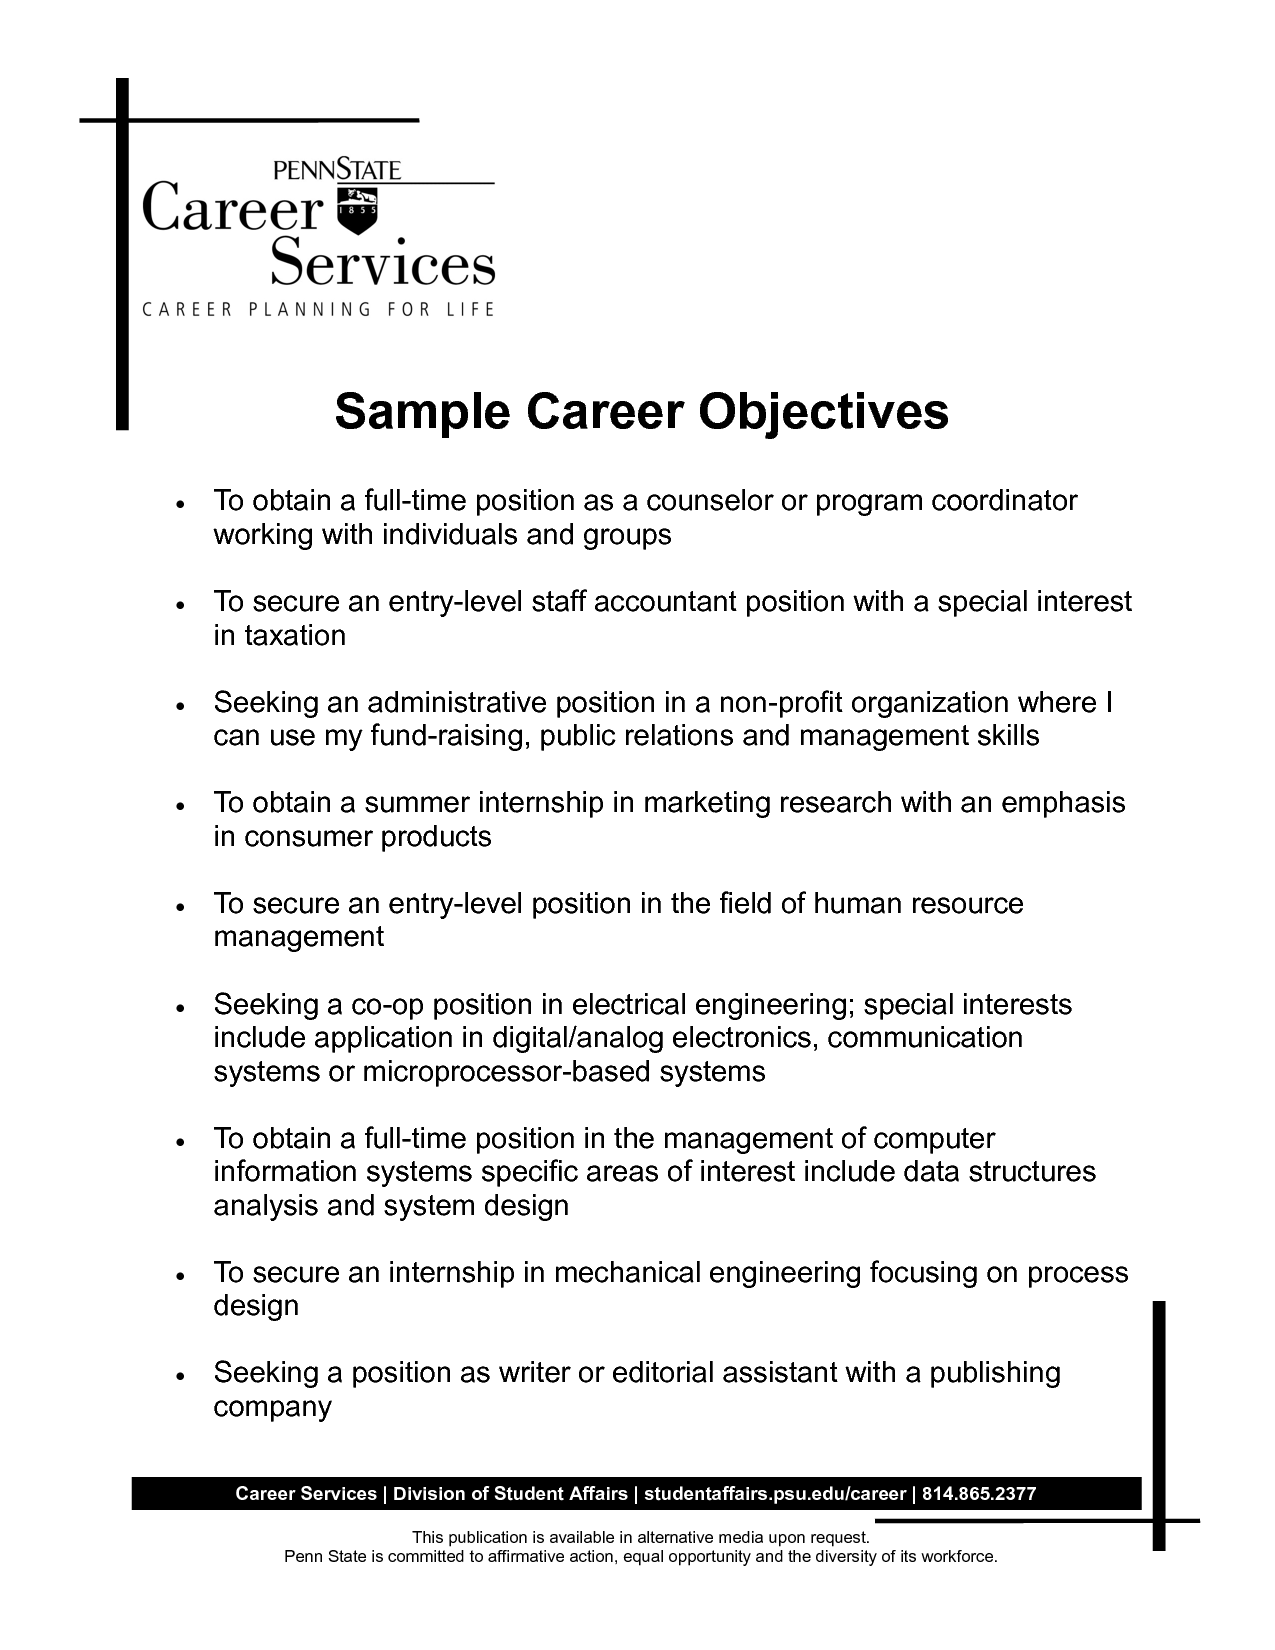 Pin By Amanda C On Job Related Sample Resume Objective